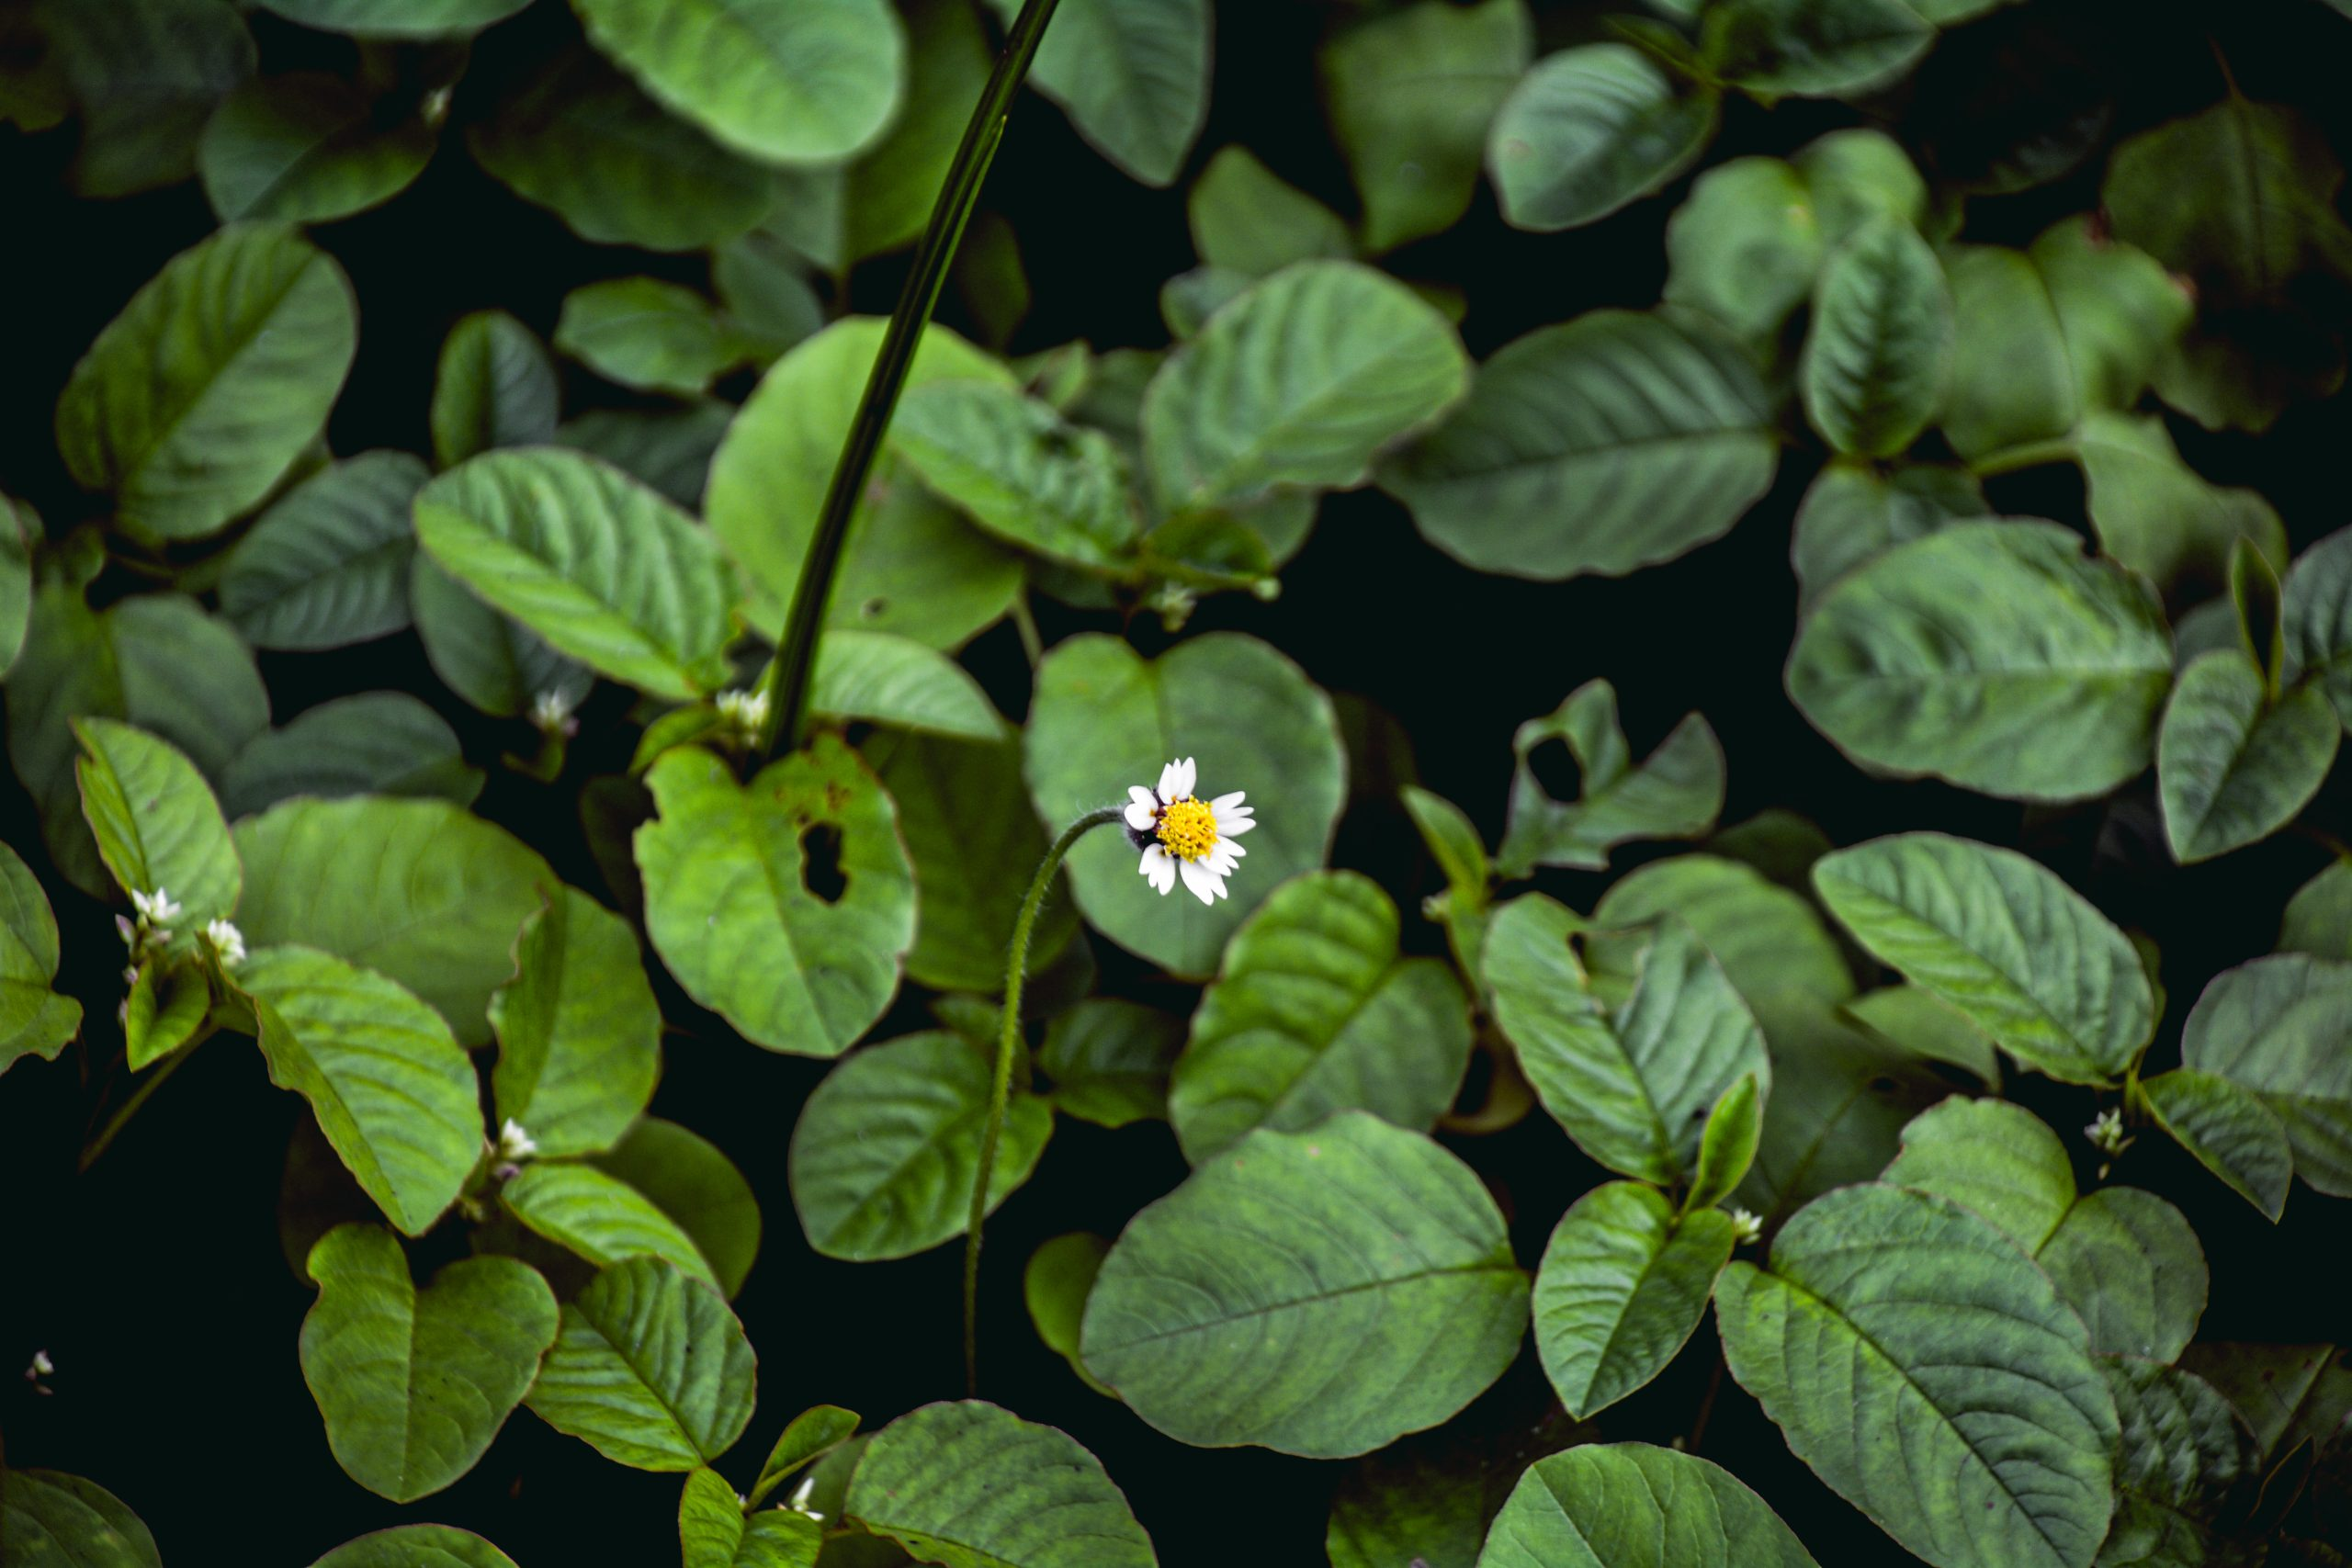 A cute White Flower in the Plants